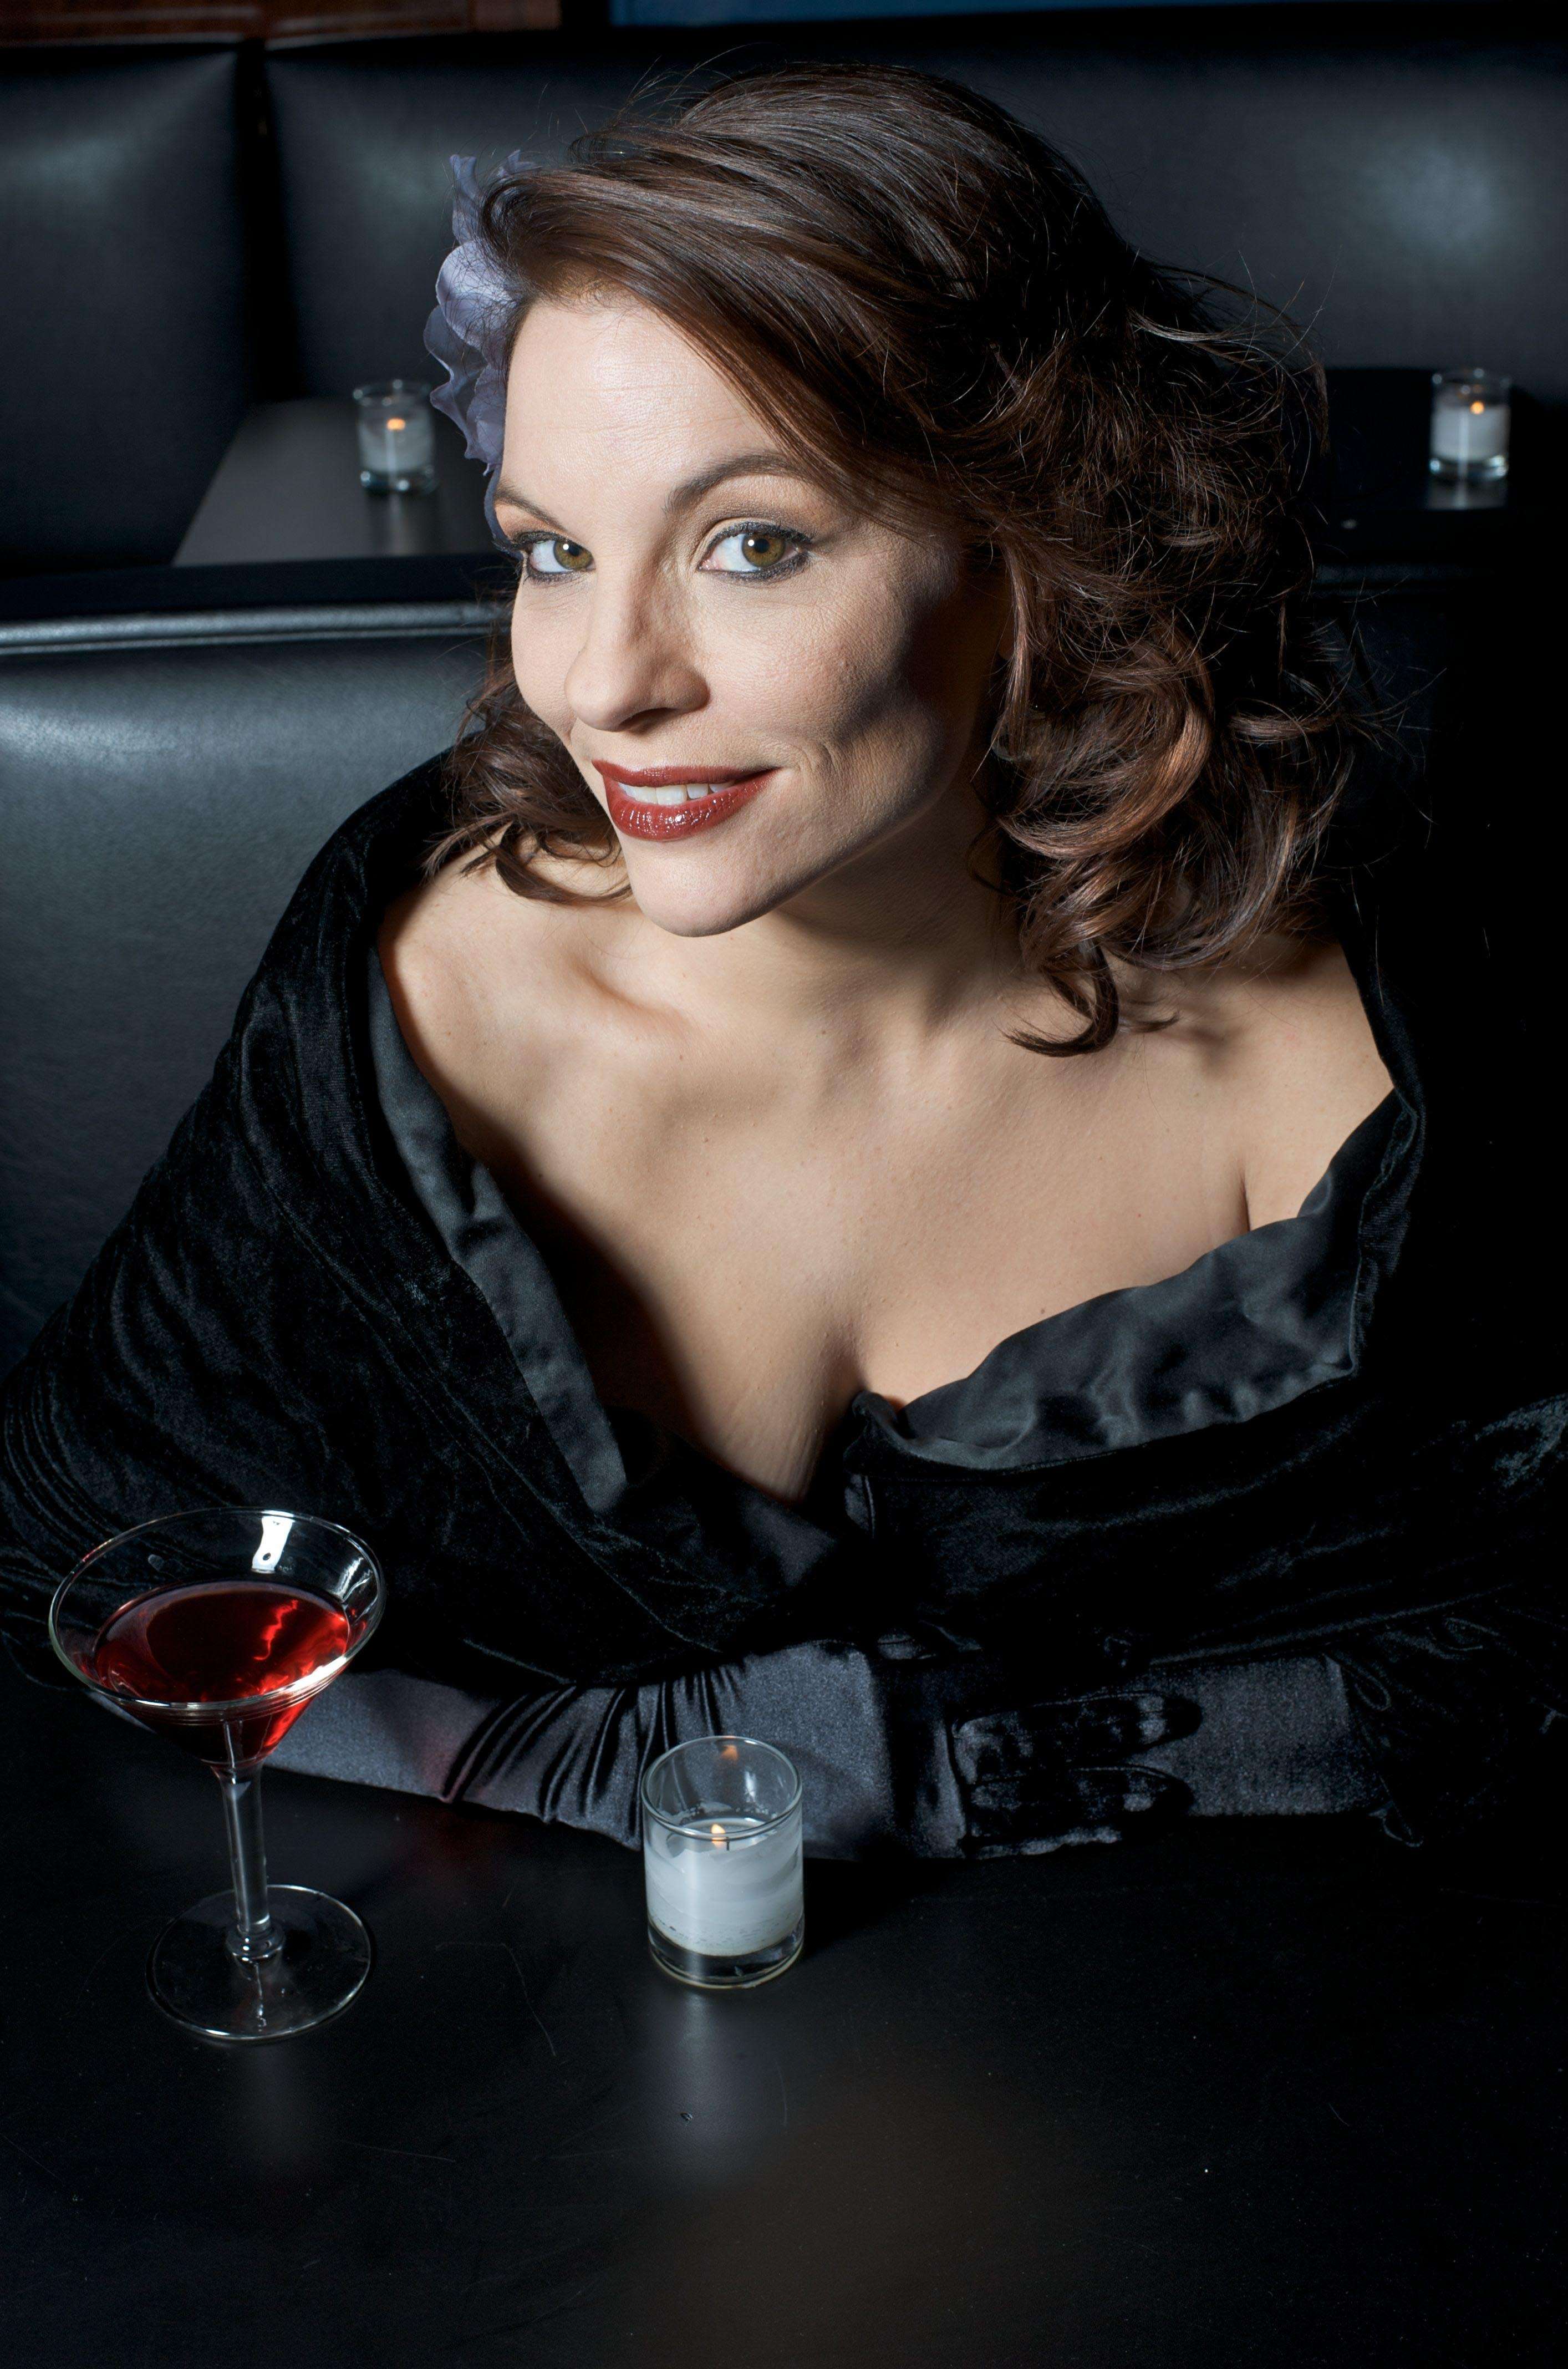 Anne Steele To Headline At The Metropolitain Room 2 18 2 22